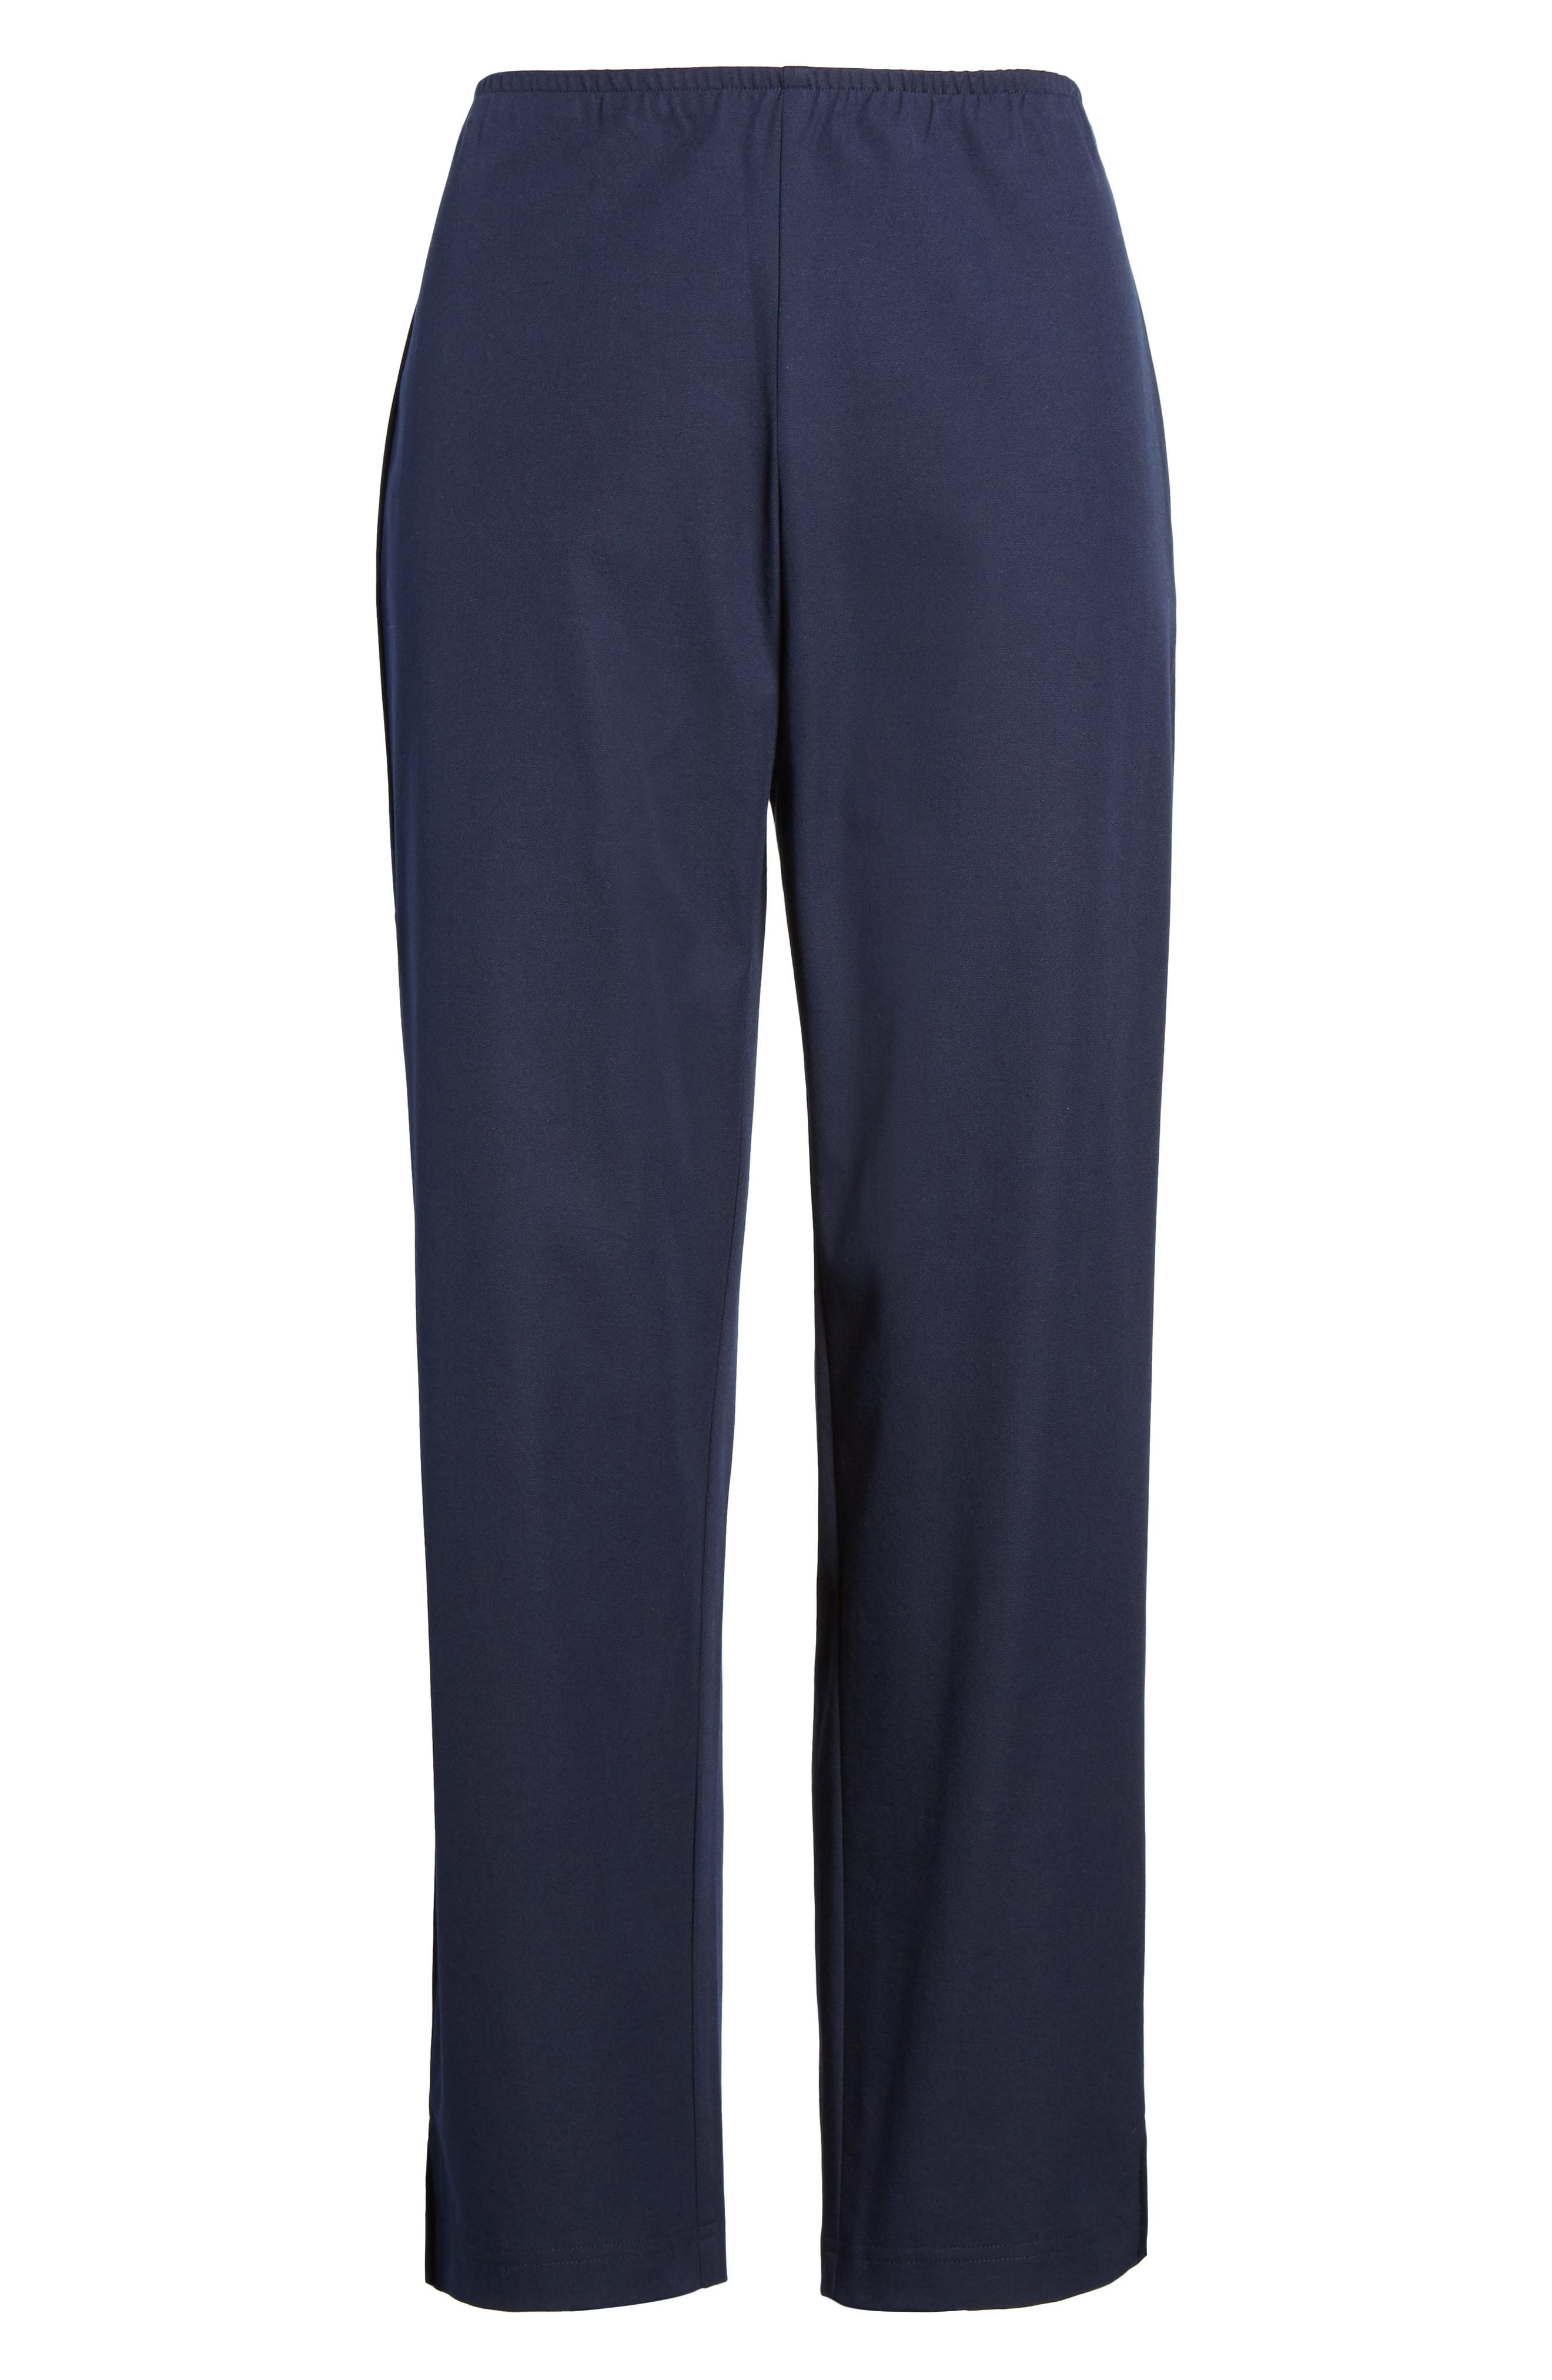 Organic Stretch Cotton Twill Ankle Pants,                             Alternate thumbnail 51, color,